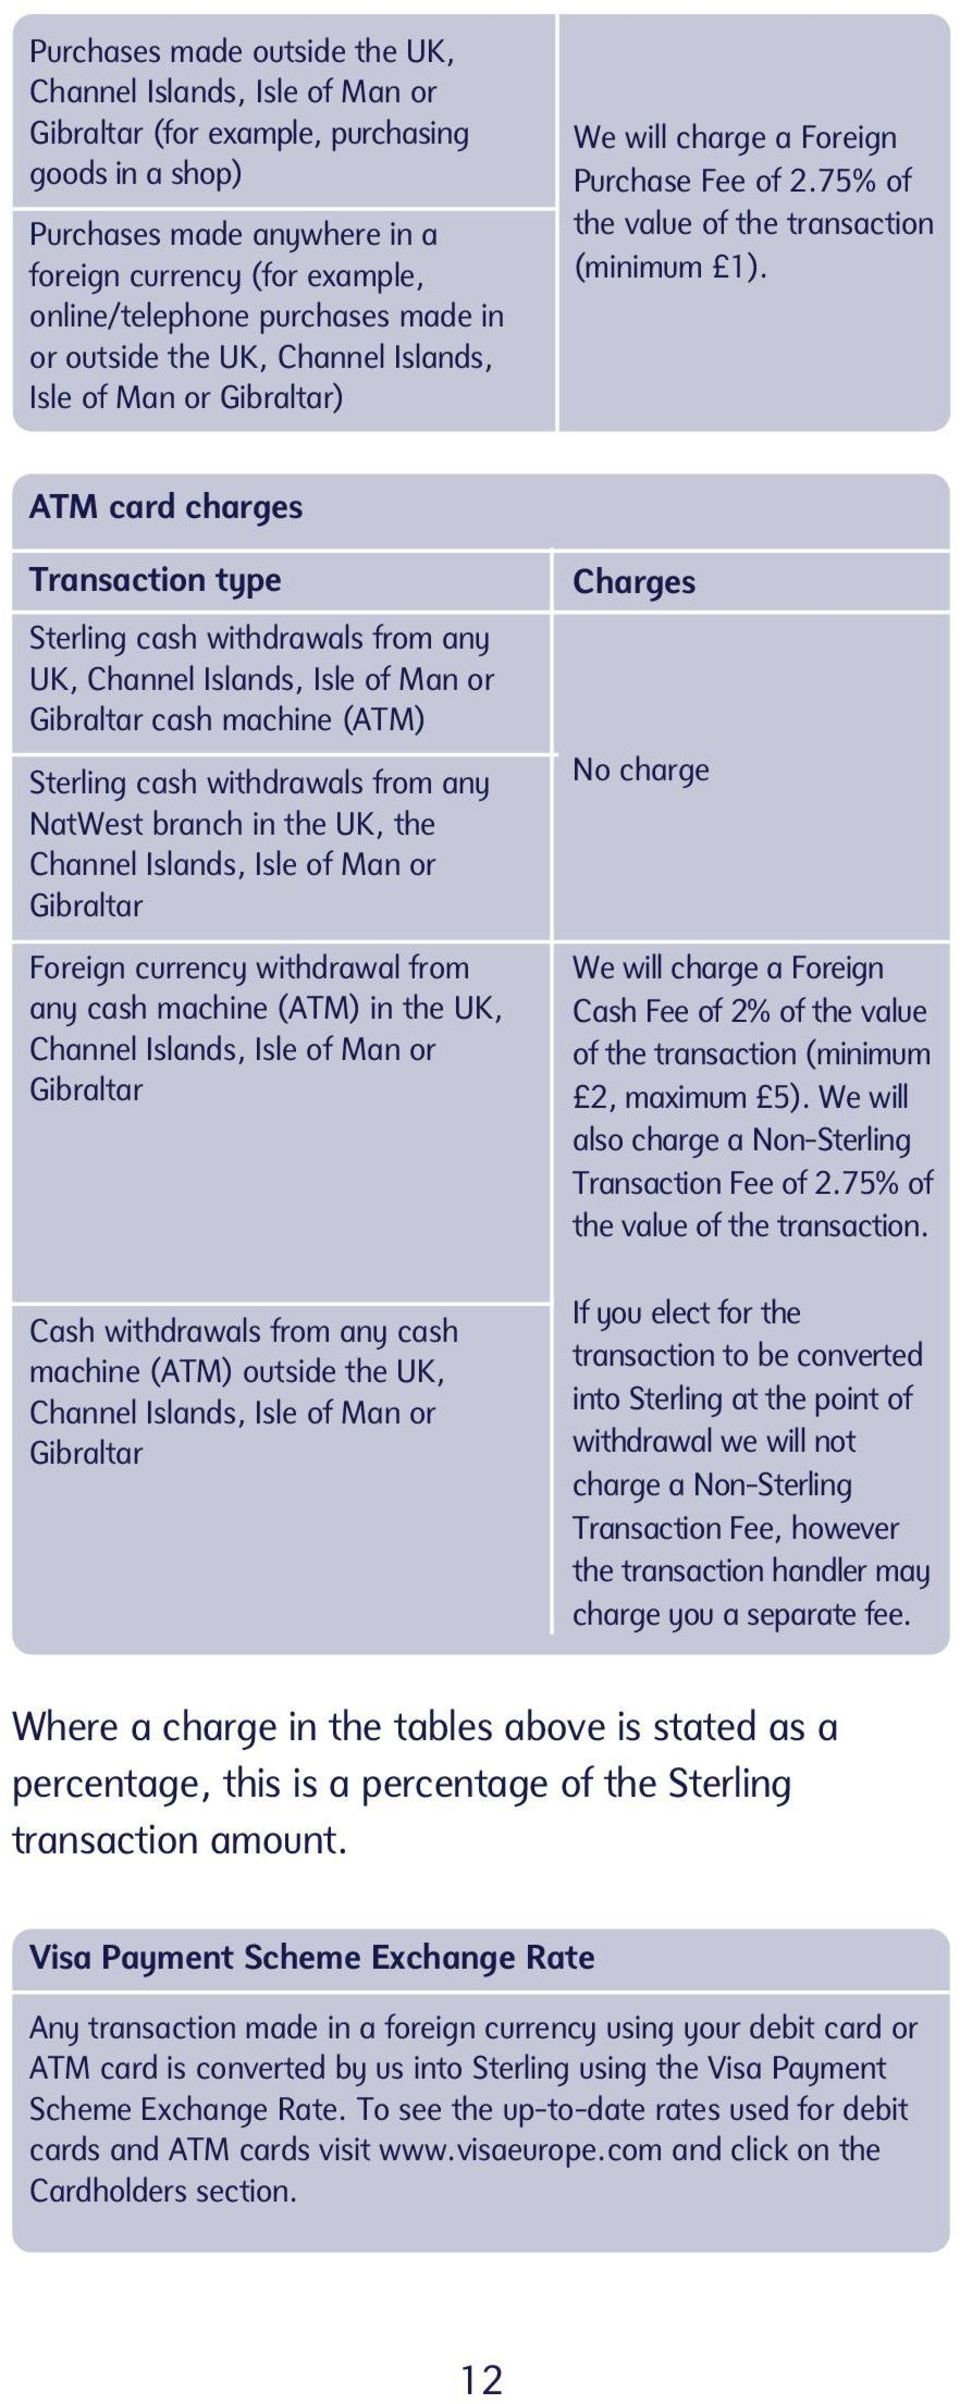 ATM card charges Transaction type Sterling cash withdrawals from any UK, Channel Islands, Isle of Man or Gibraltar cash machine (ATM) Sterling cash withdrawals from any NatWest branch in the UK, the